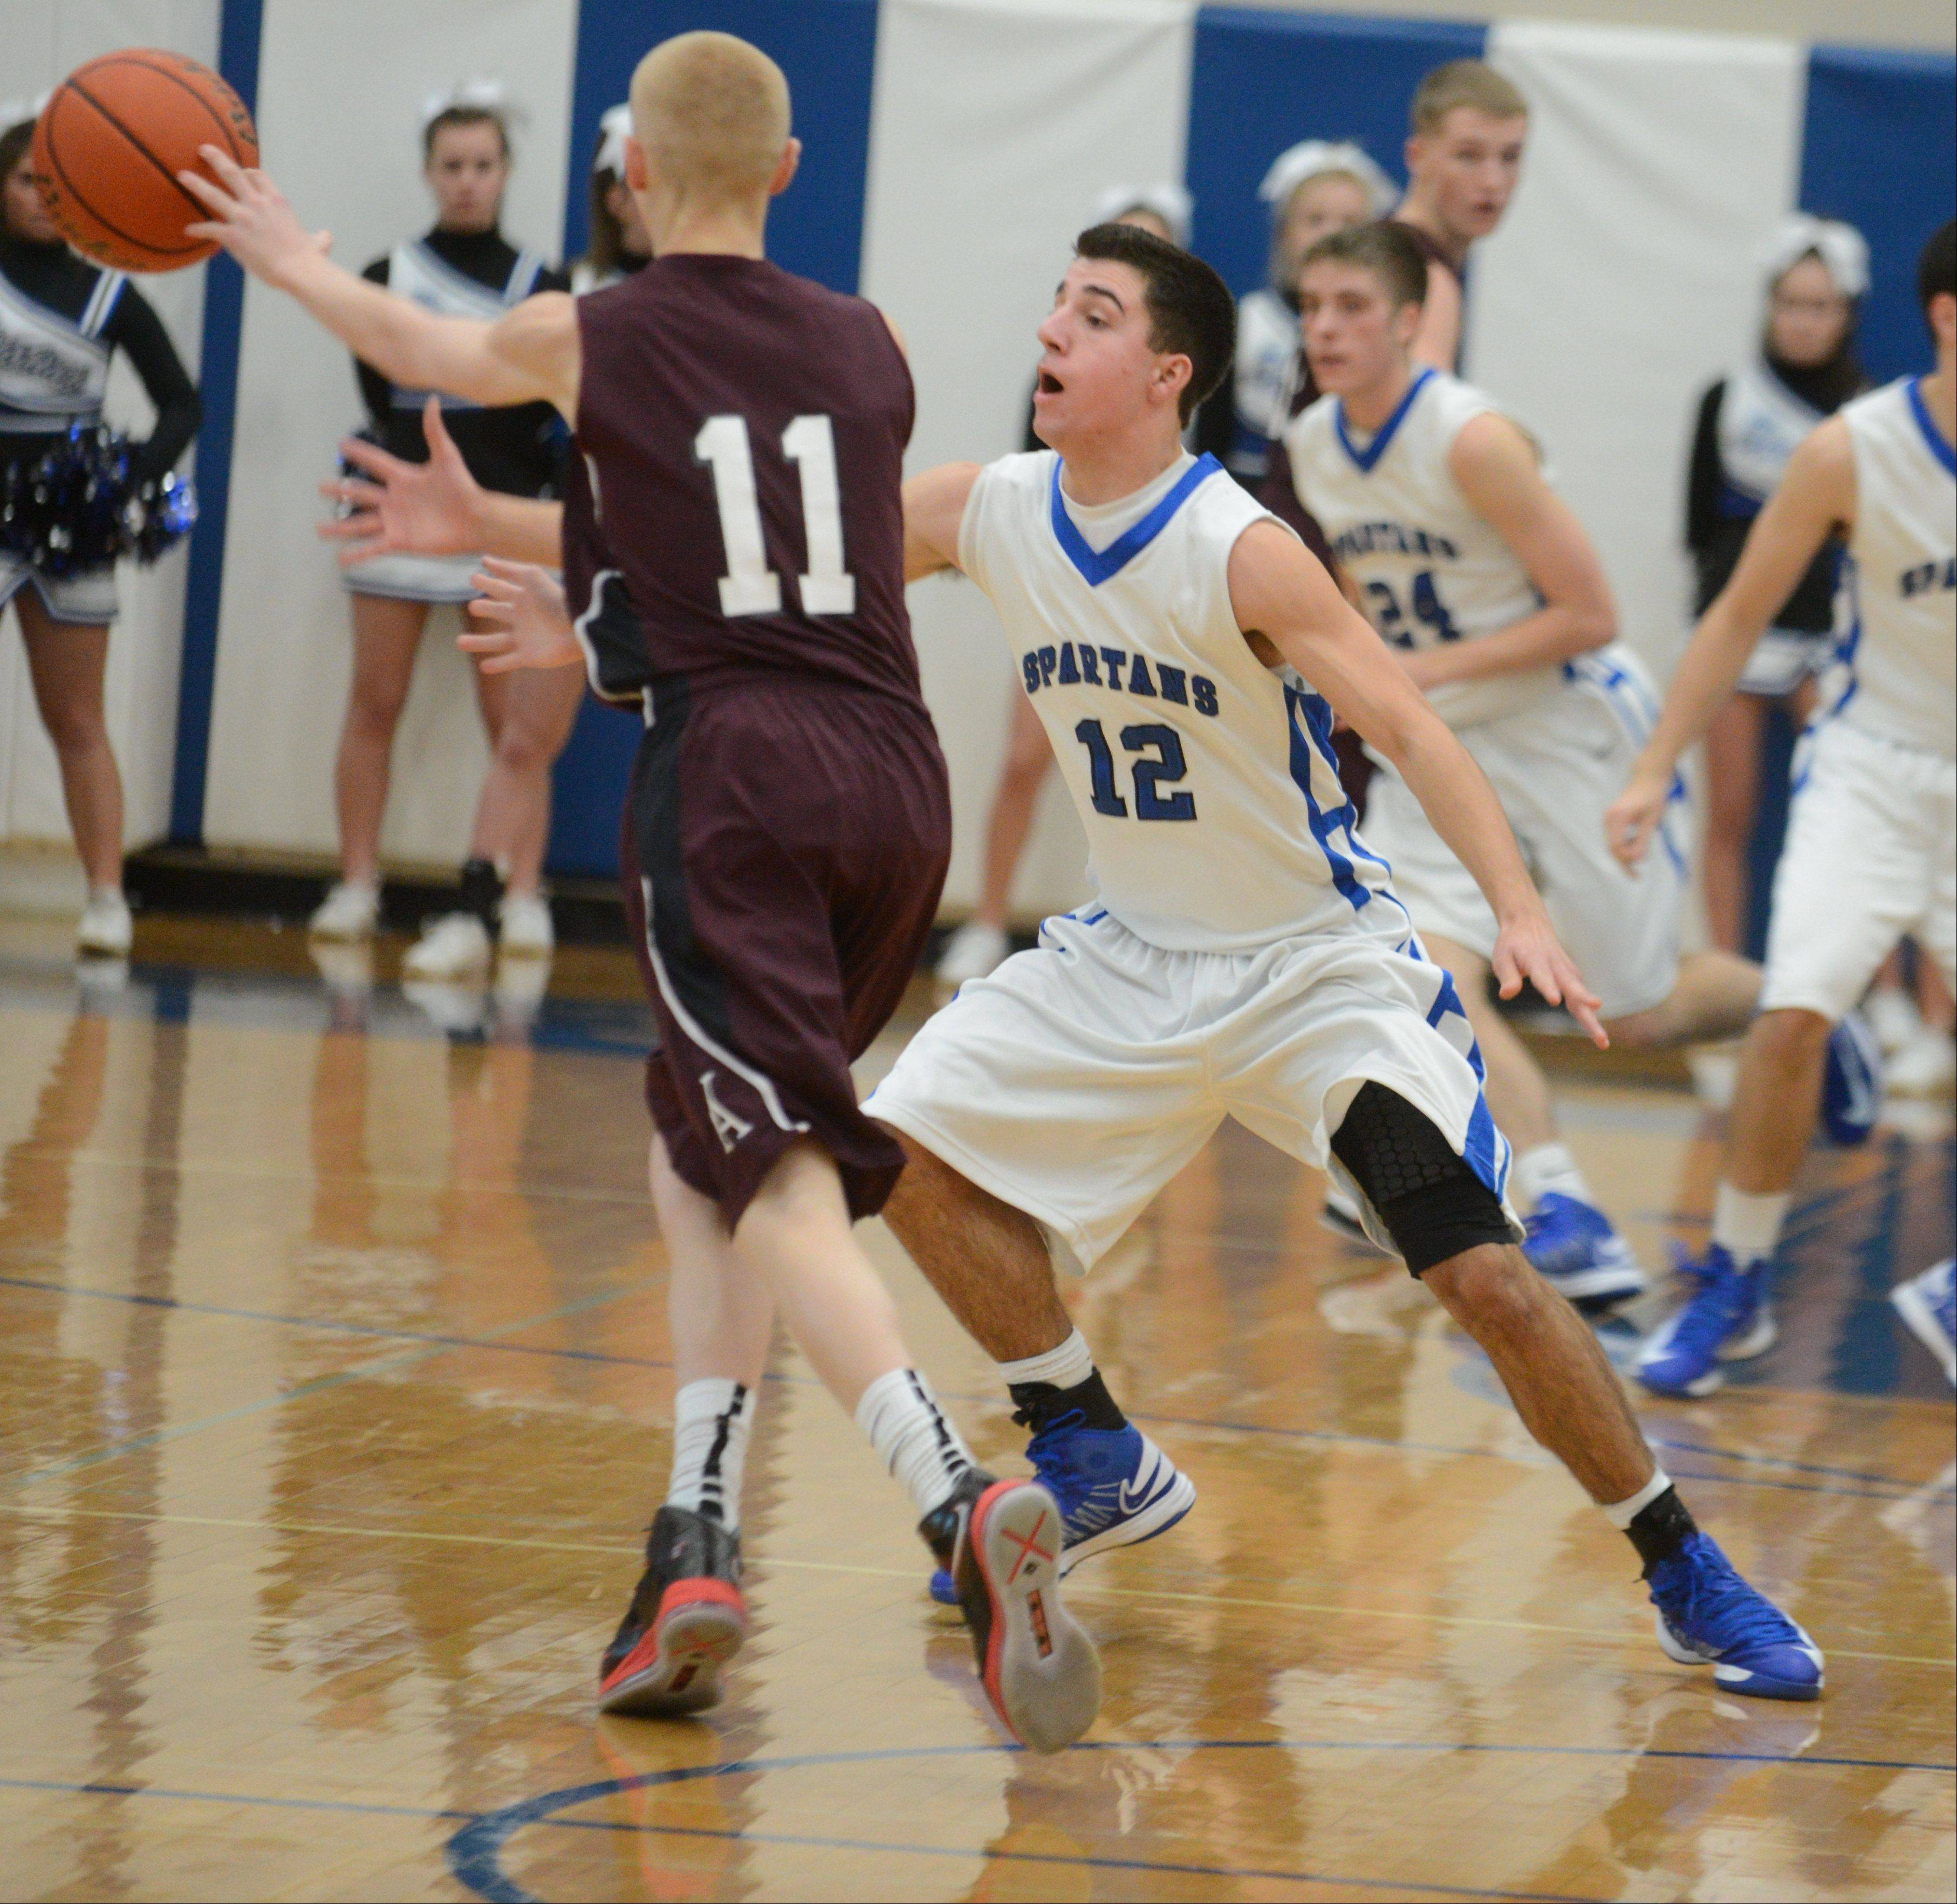 St. Francis High School hosted Wheaton Academy Friday night for boys basketball.